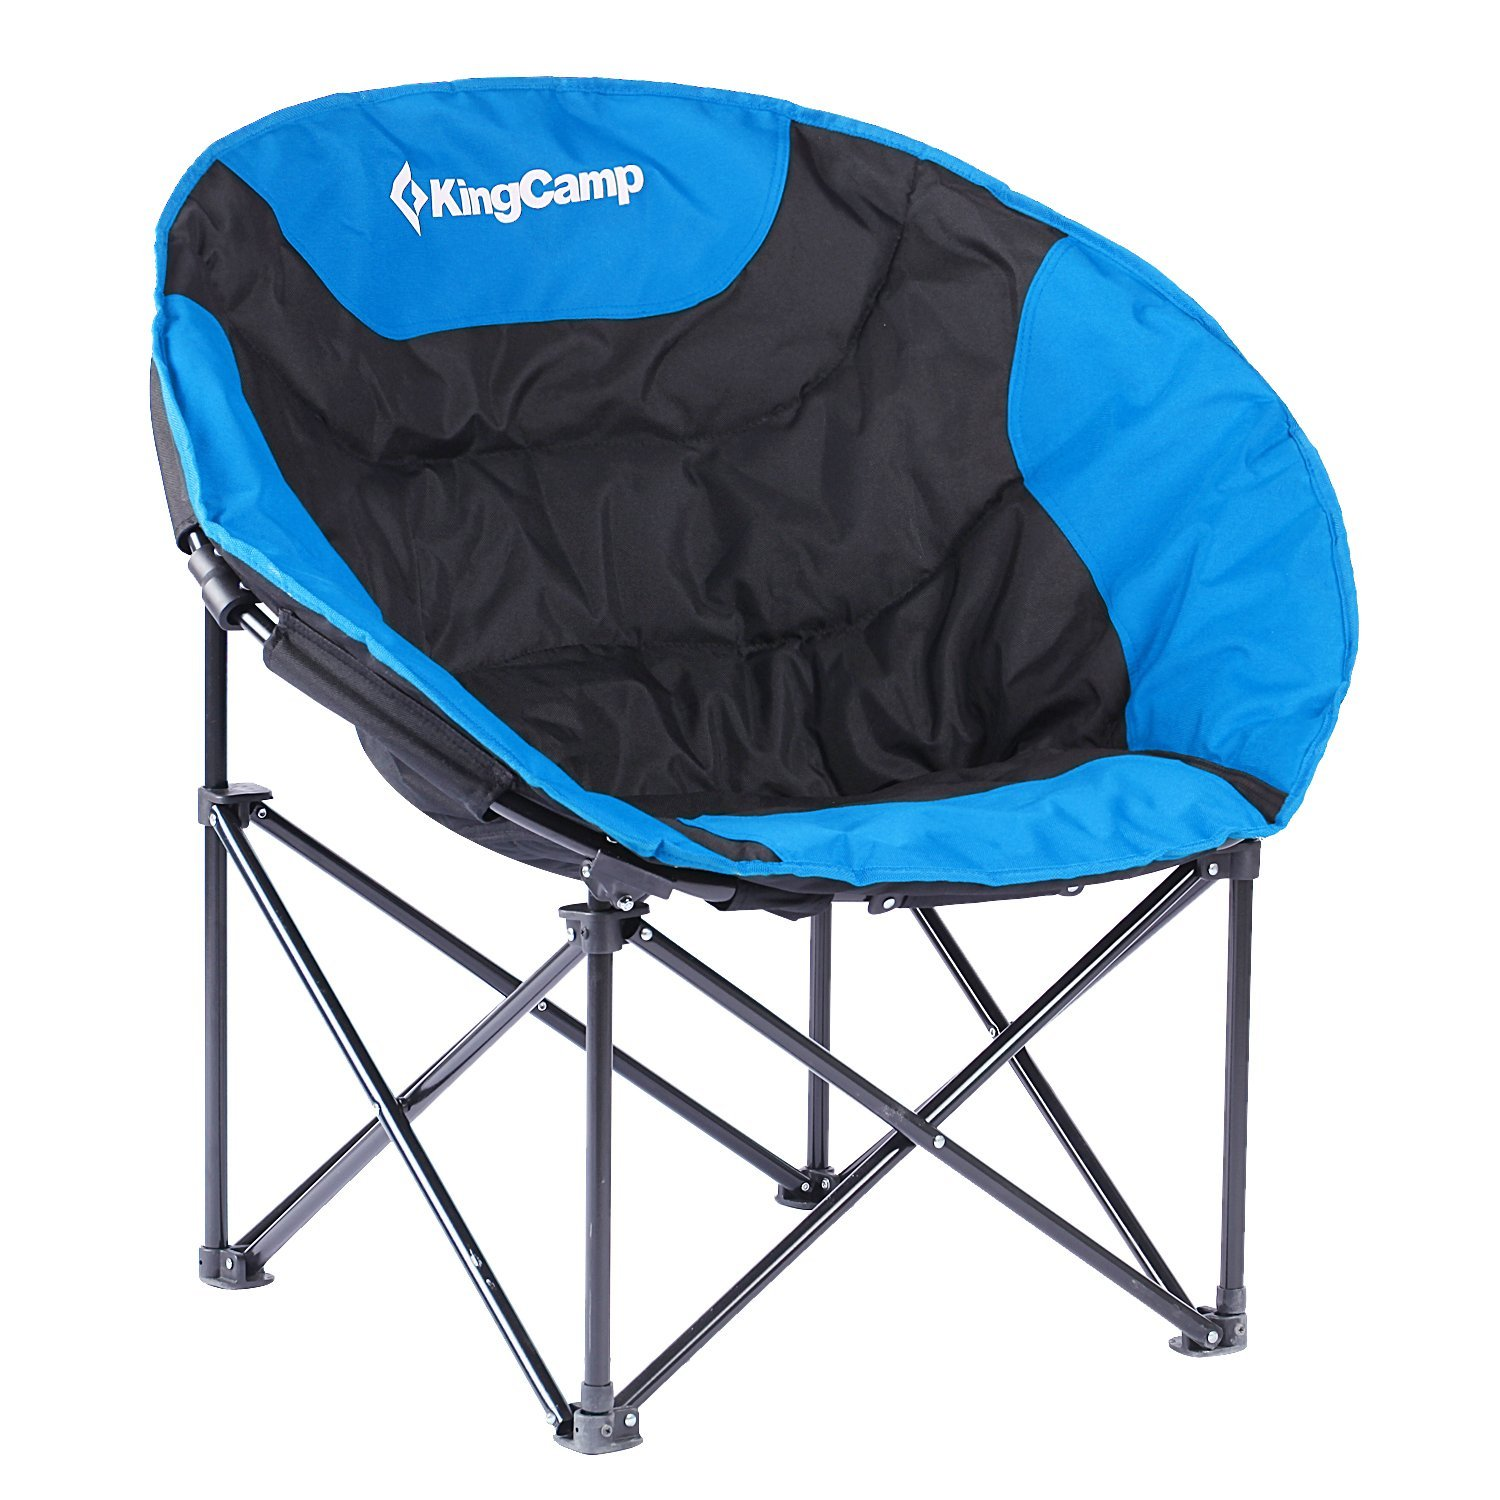 KingCamp Moon Leisure Camping Chair Frame Folding Padded Round